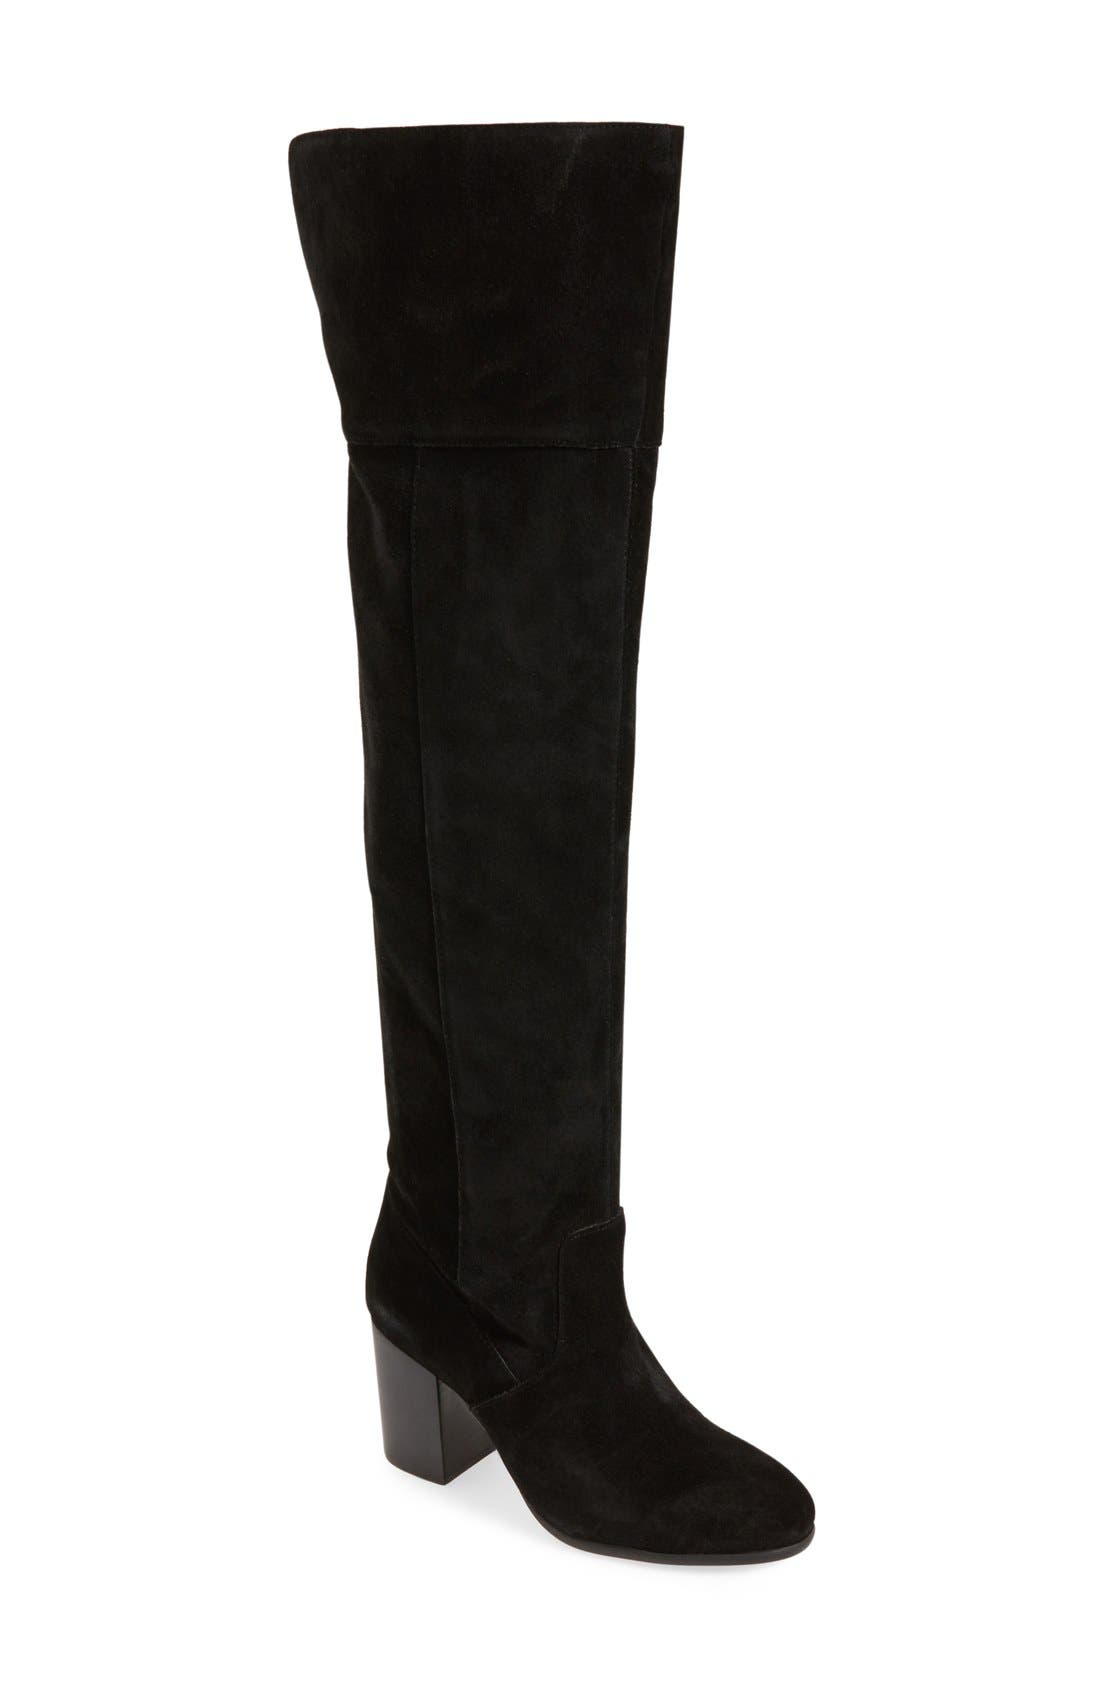 JessicaSimpson'Ebyy' Over the KneeBoot,                             Main thumbnail 1, color,                             001